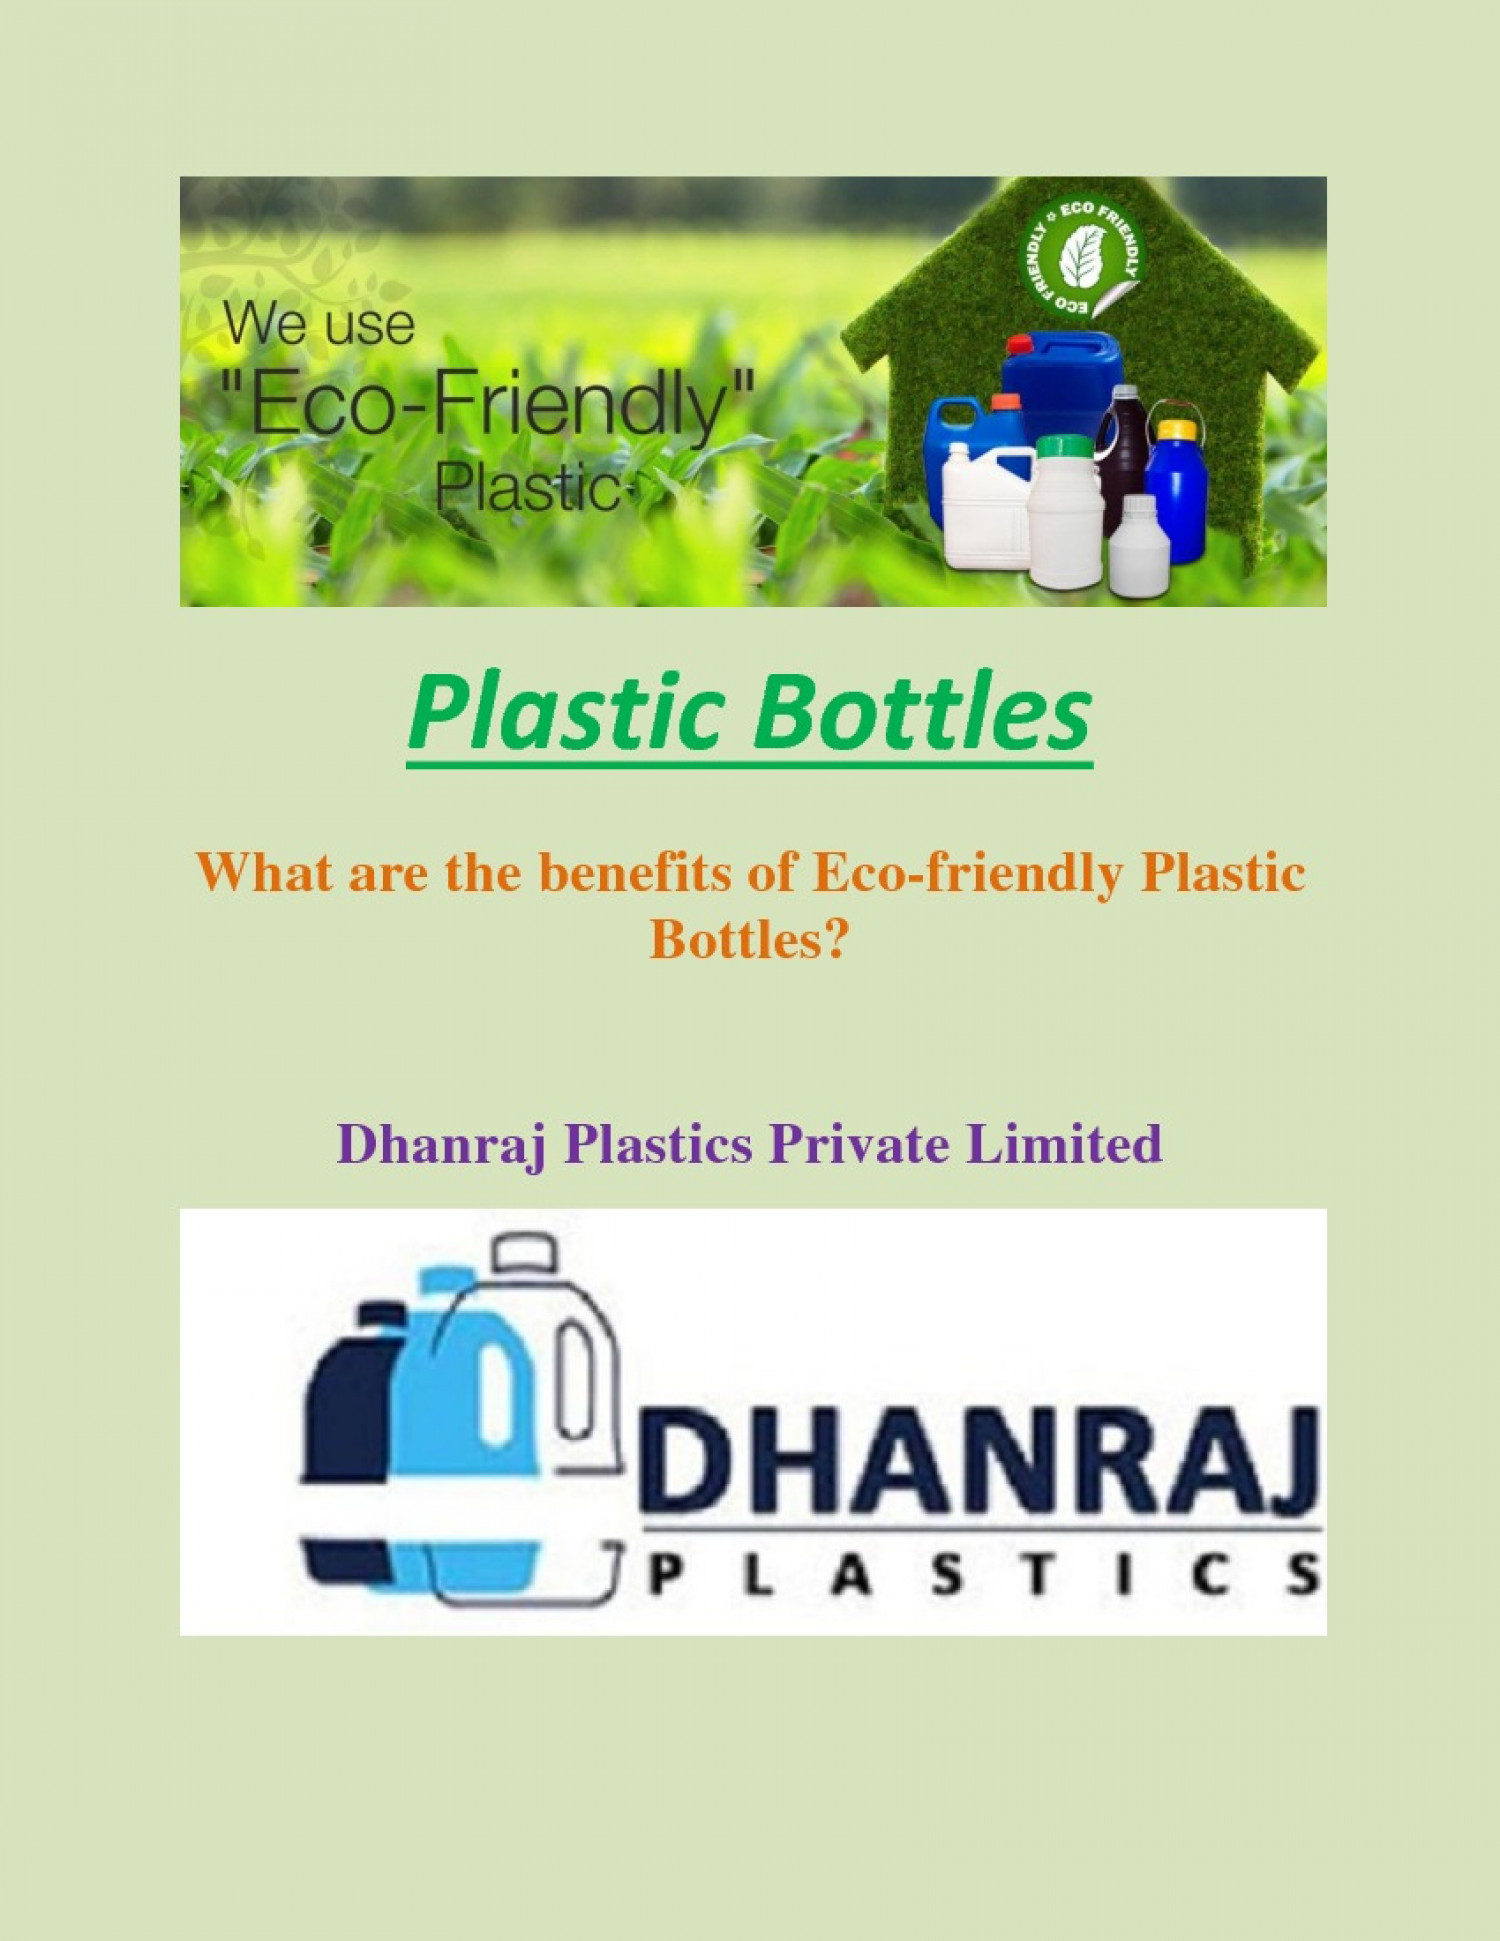 What are the benefits of Eco-friendly Plastic Bottles- Dhanraj Plastics Infographic